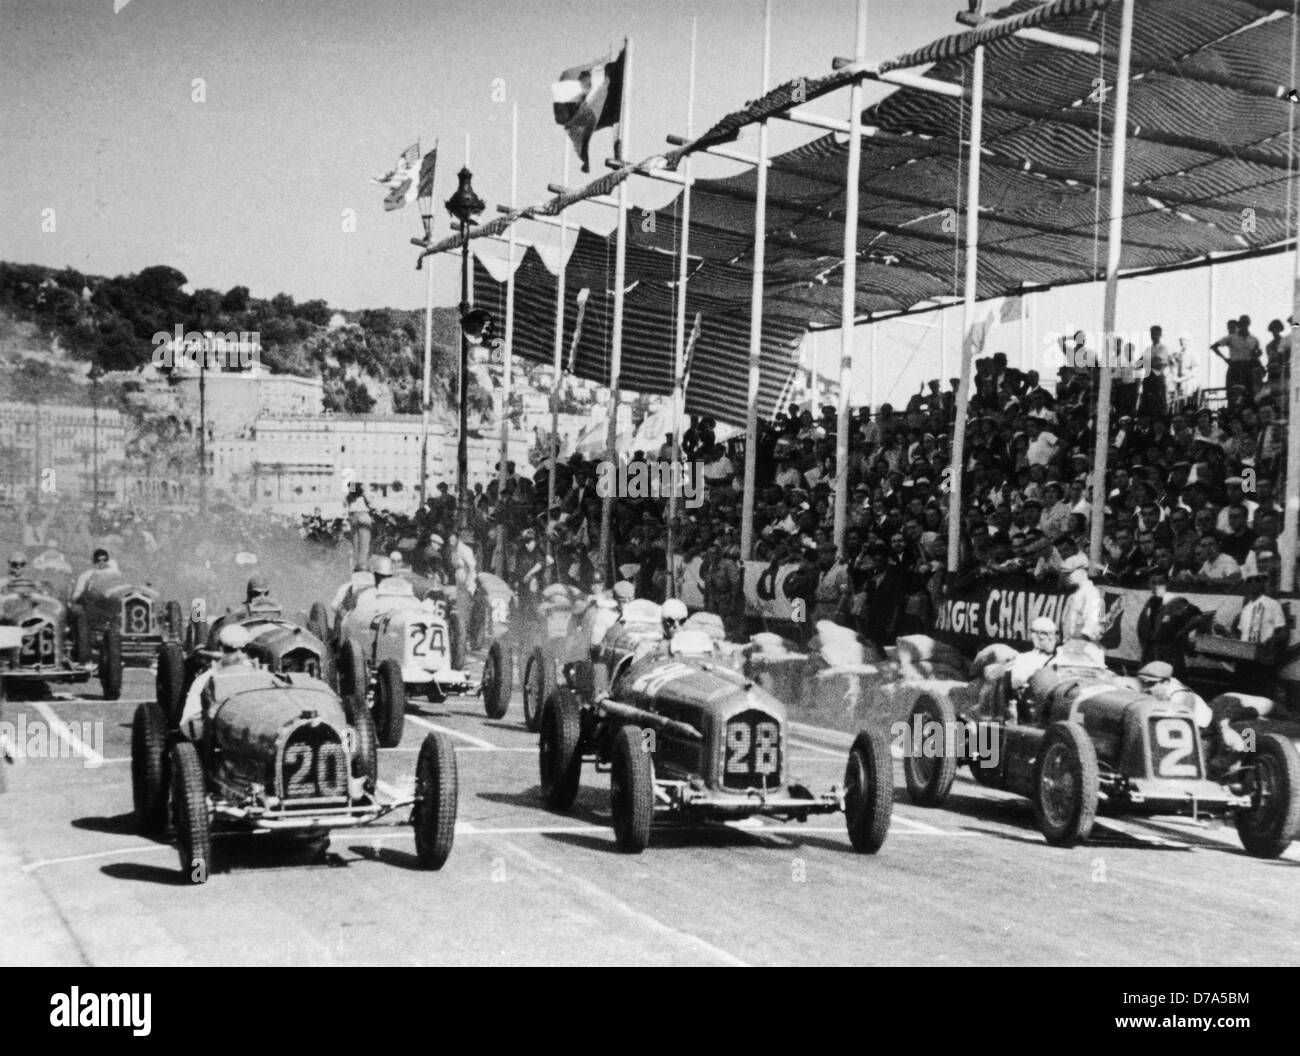 Start of the 1934 Nice Grand Prix with Nuvolari in car number 2, Maserati 8CM - Stock Image